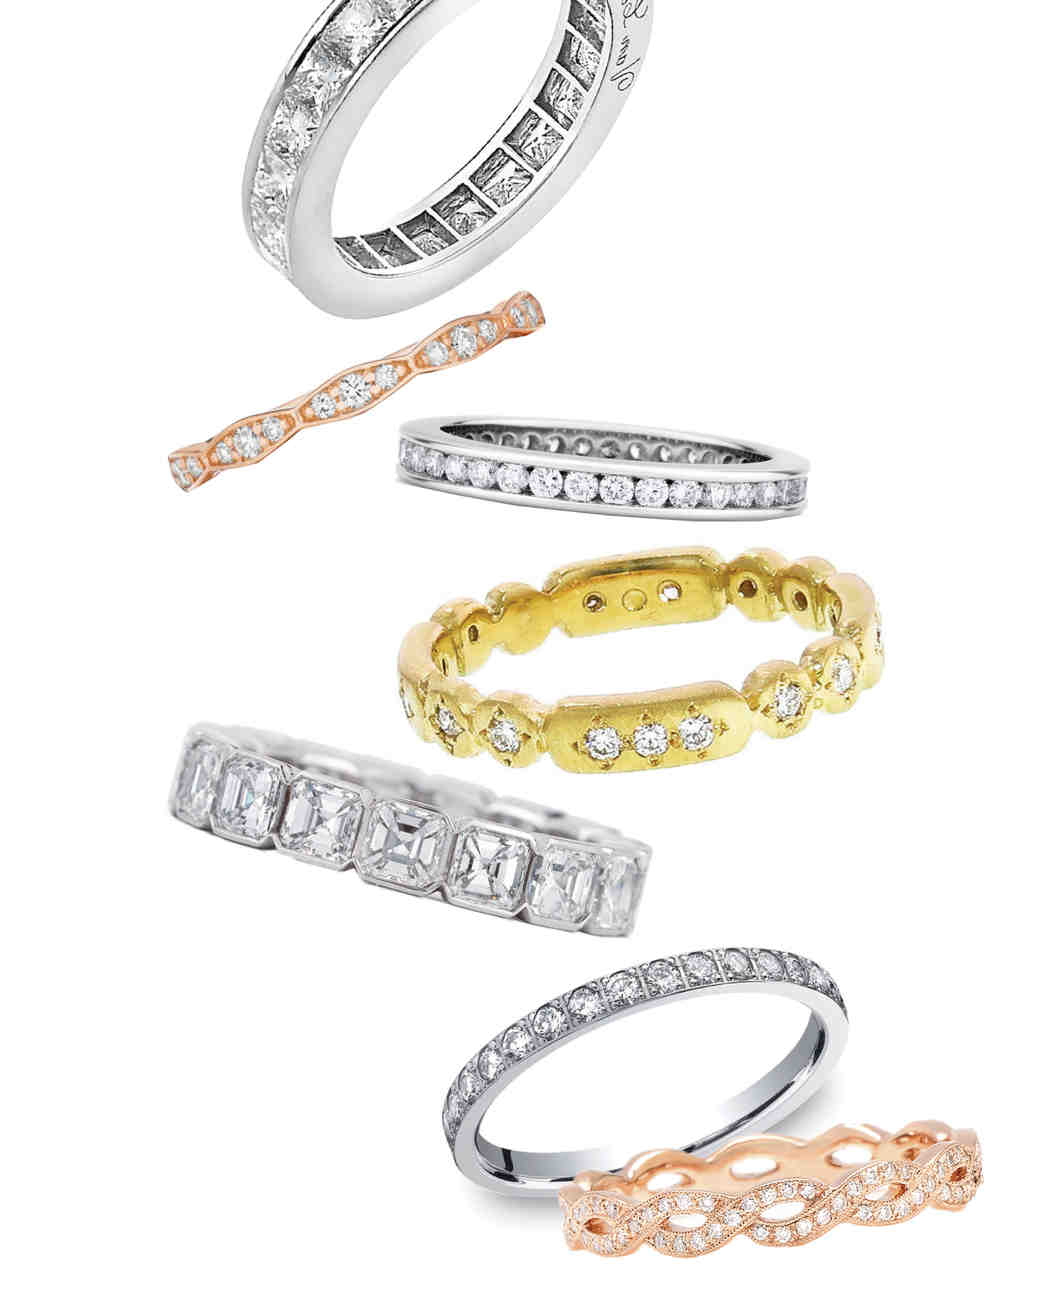 What Your Wedding Band Says About You